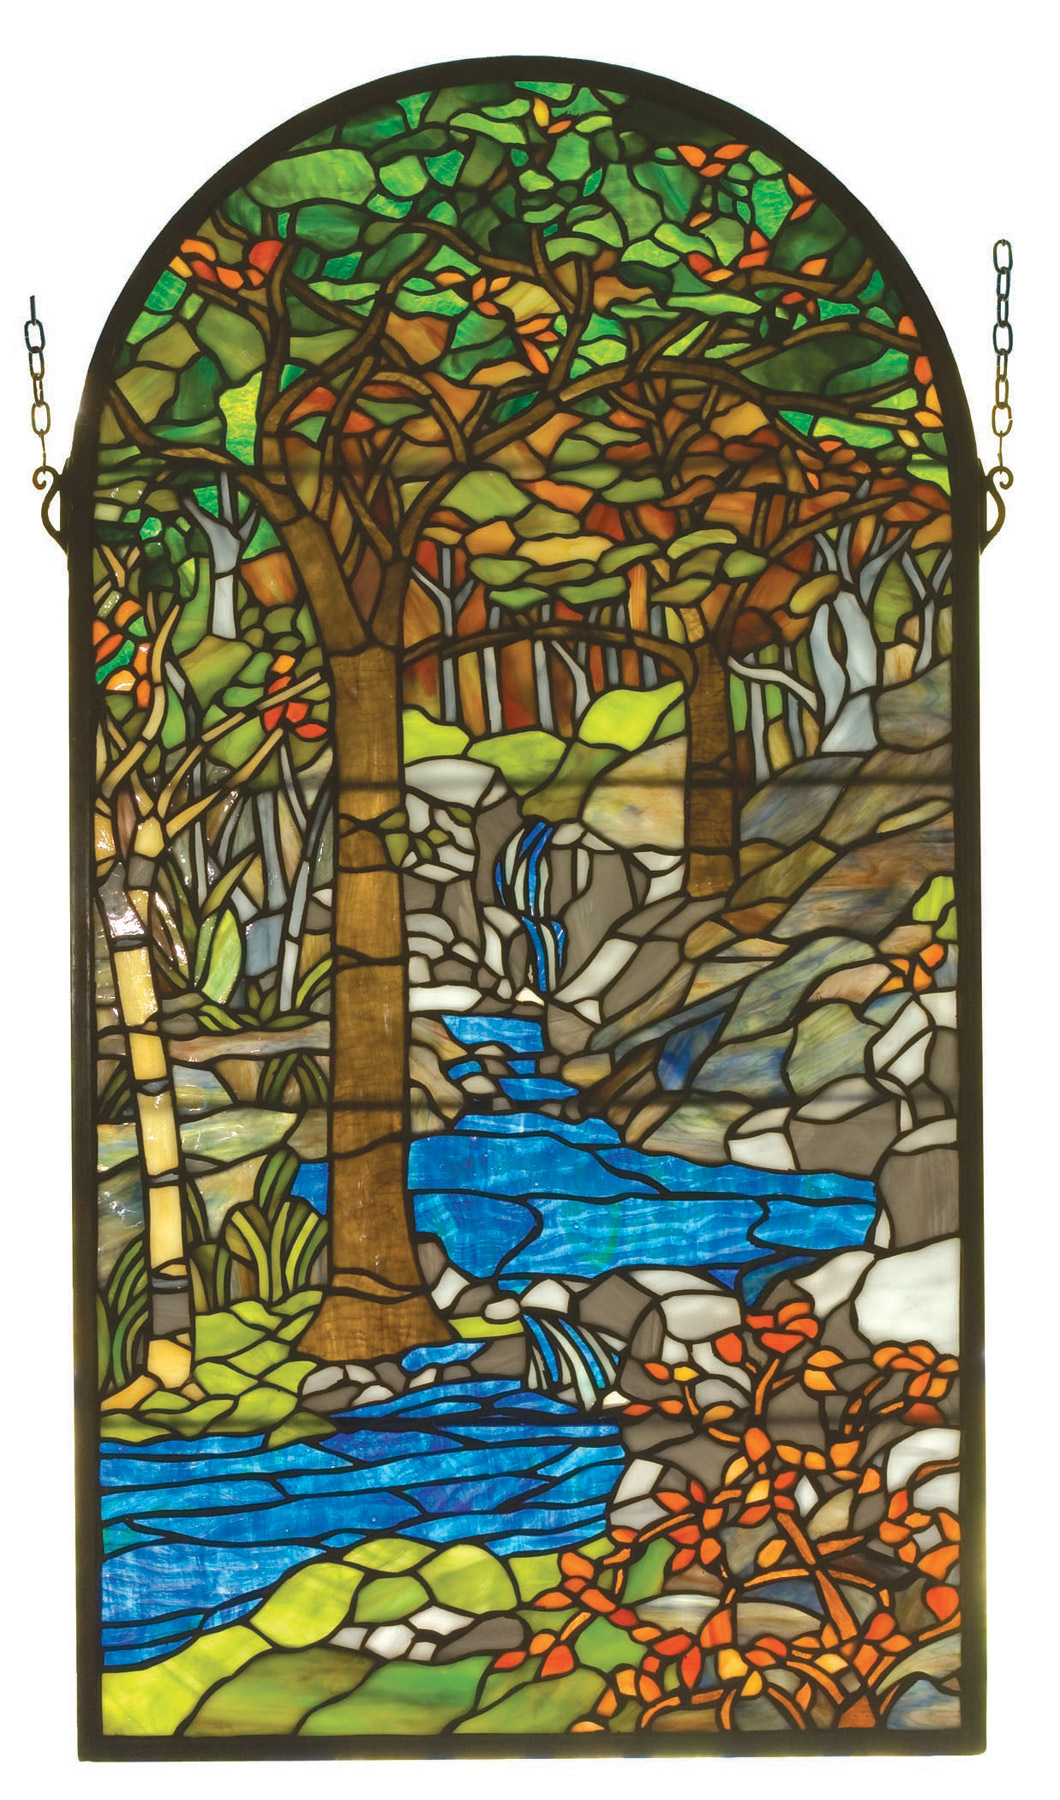 Stained Glass Windows : Meyda tiffany waterbrooks stained glass window